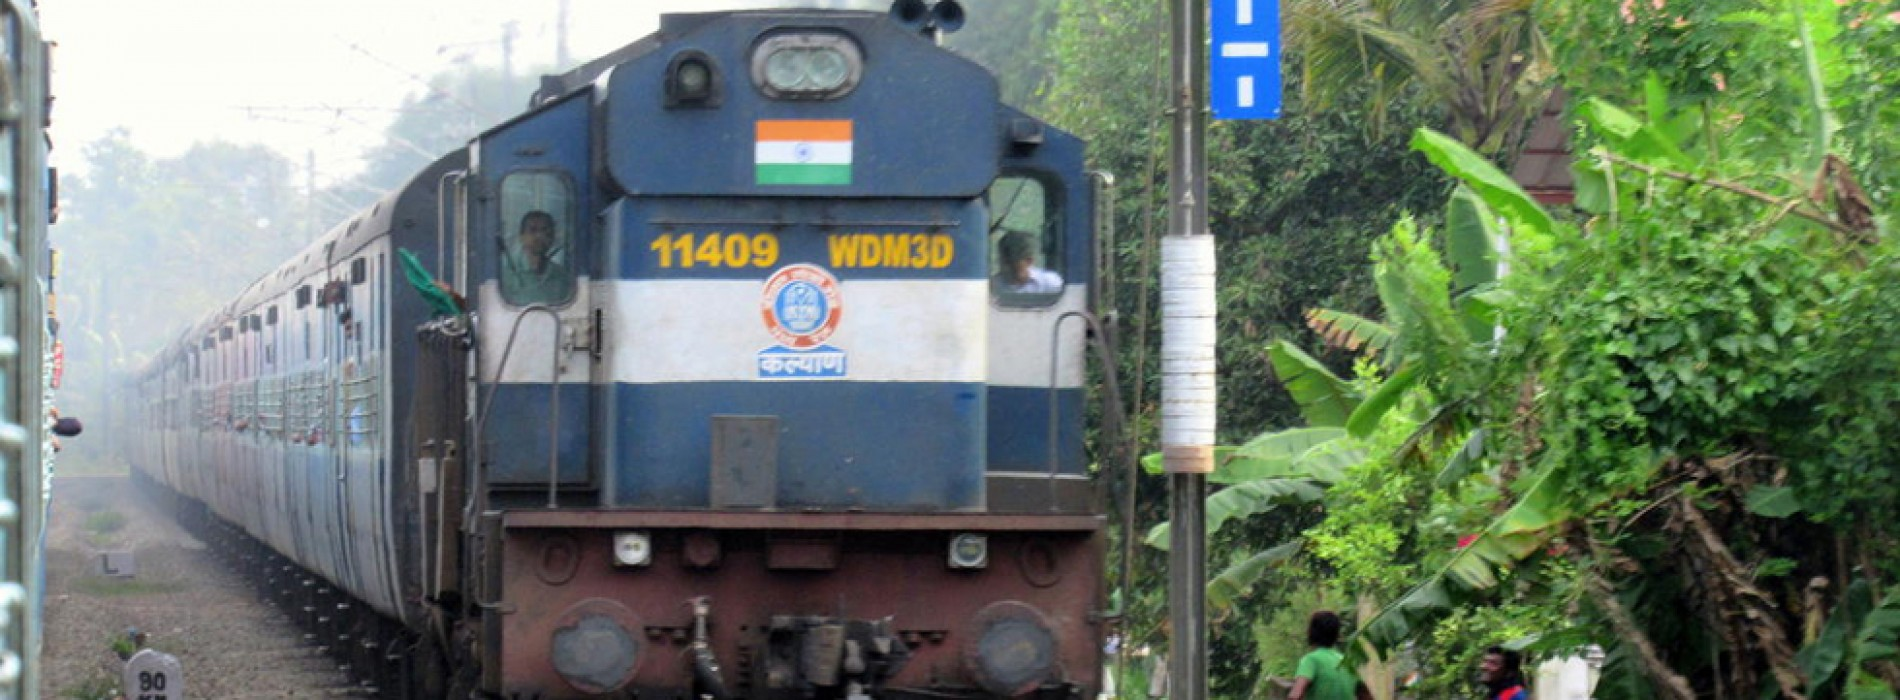 Rajdhani and Shatabdi Express trains set to get Rs. 50 lakh makeover under Indian Railways' 'Operation Swarn'